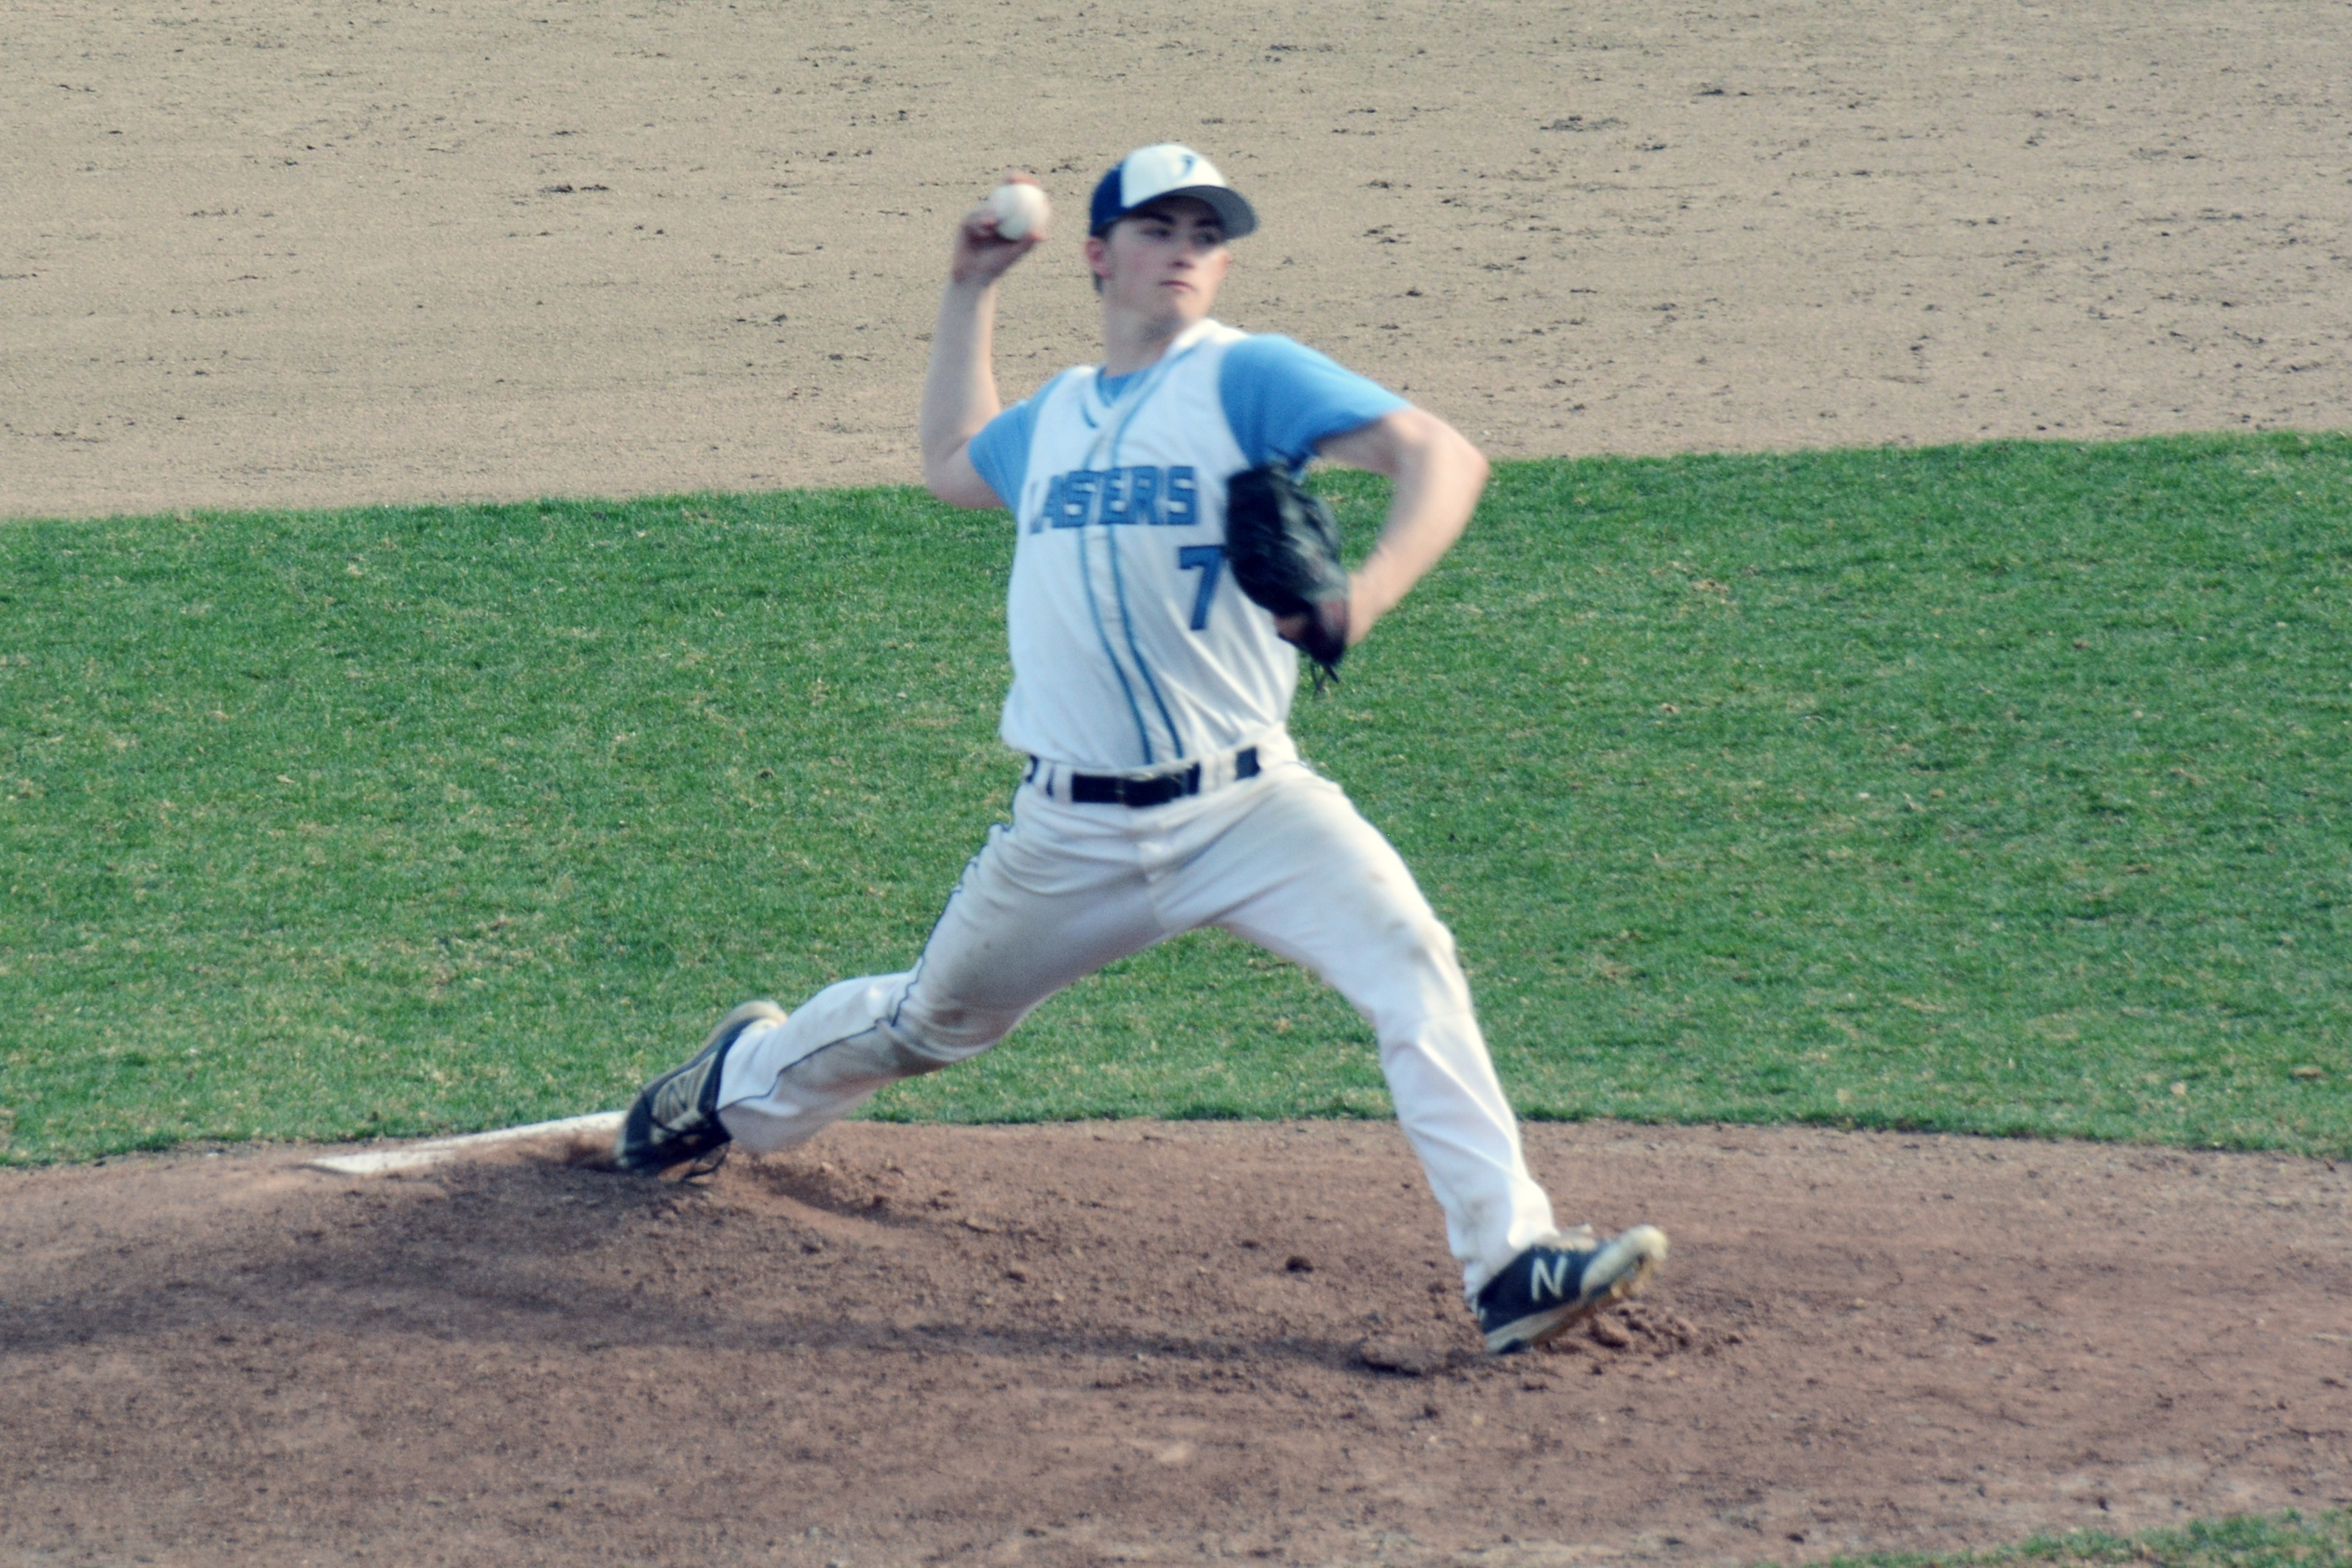 Lasell Baseball advances in GNAC Tournament with win over Norwich